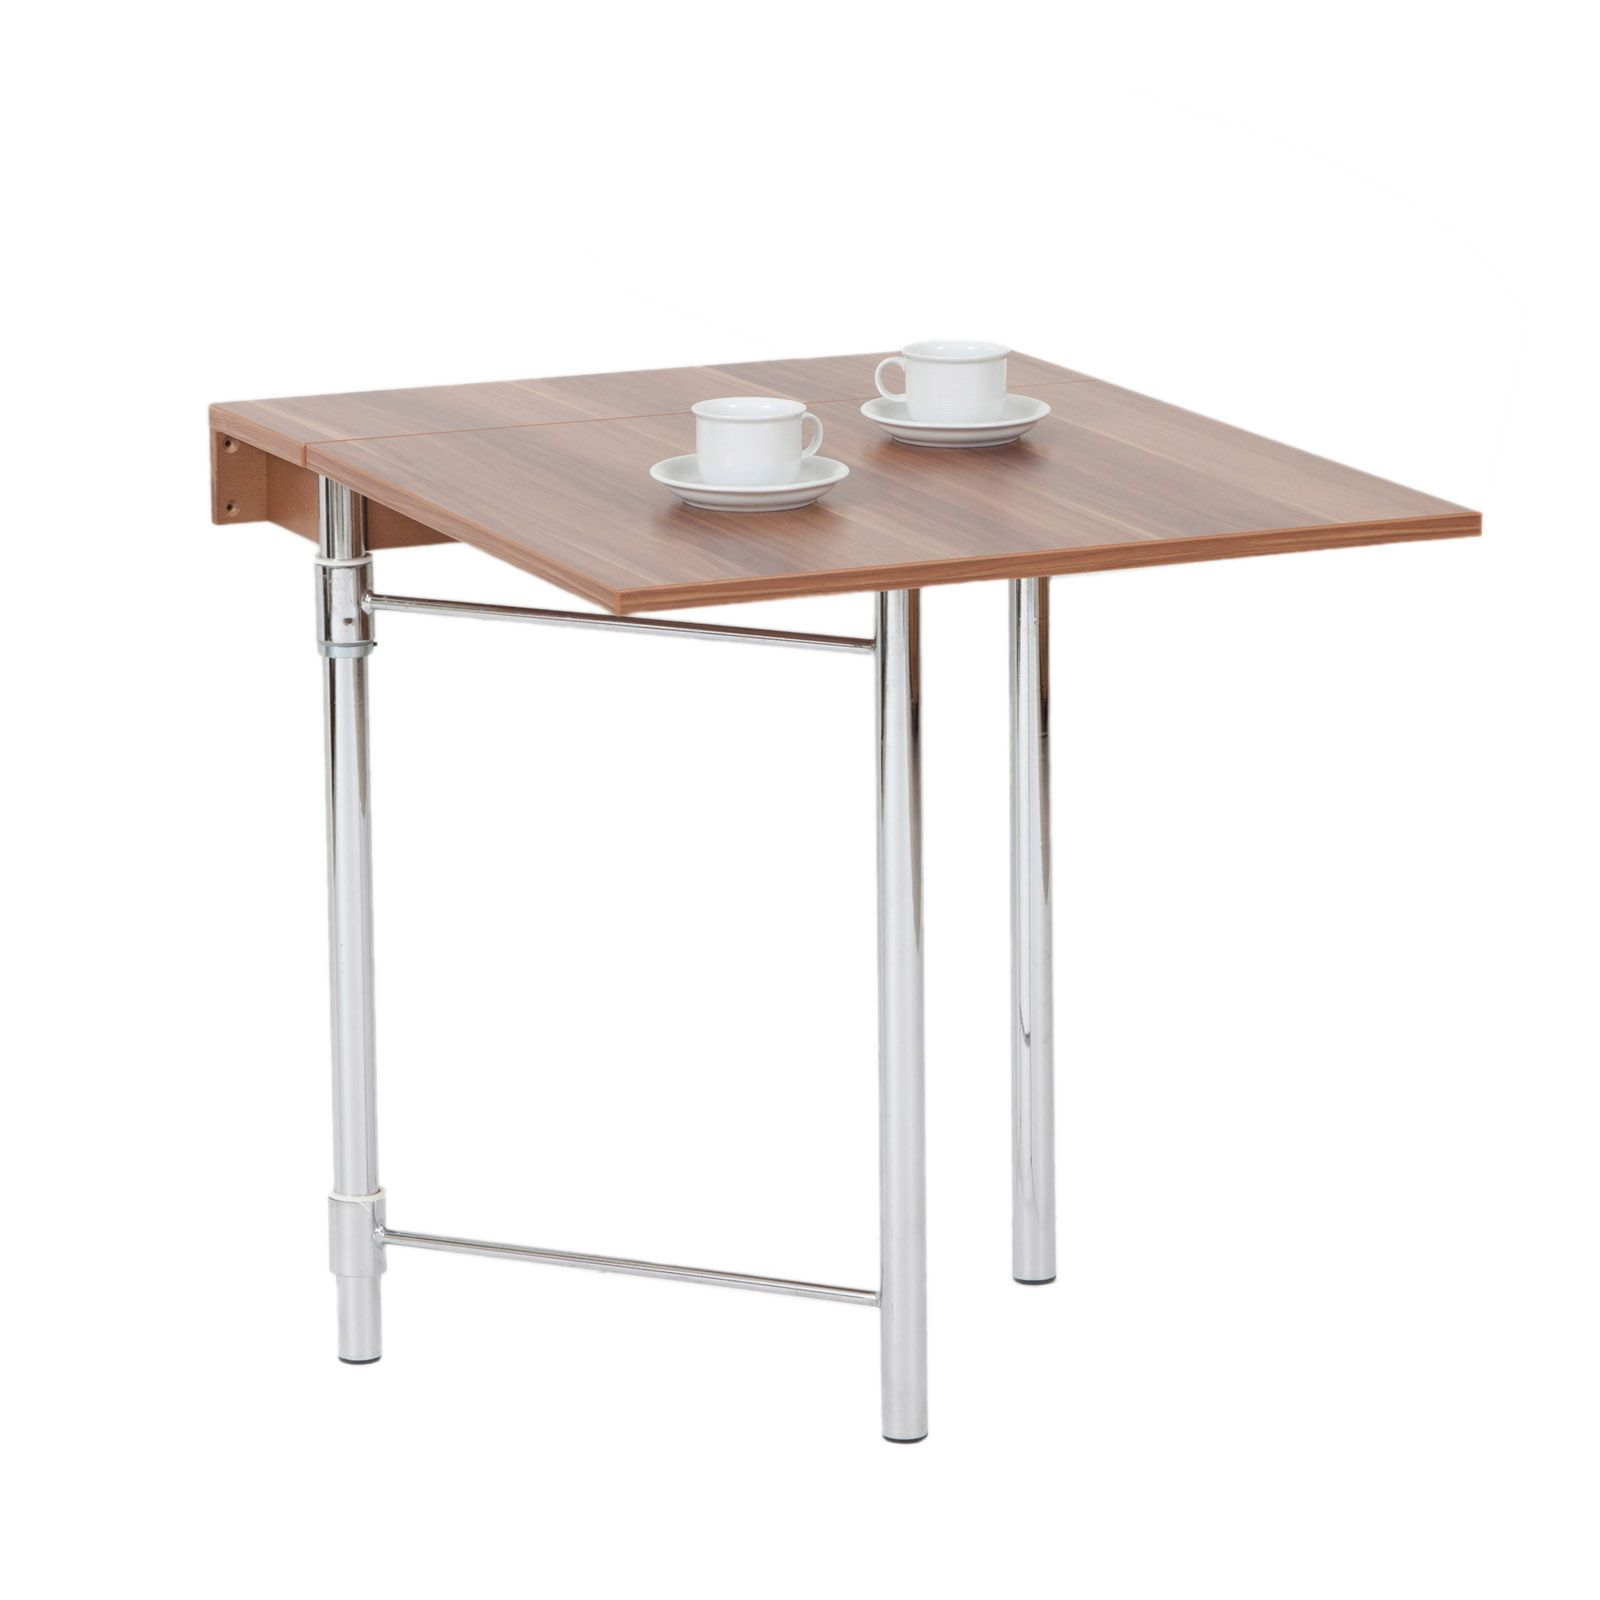 Table pliante murale great design table cuisine nolte for Table pliante murale